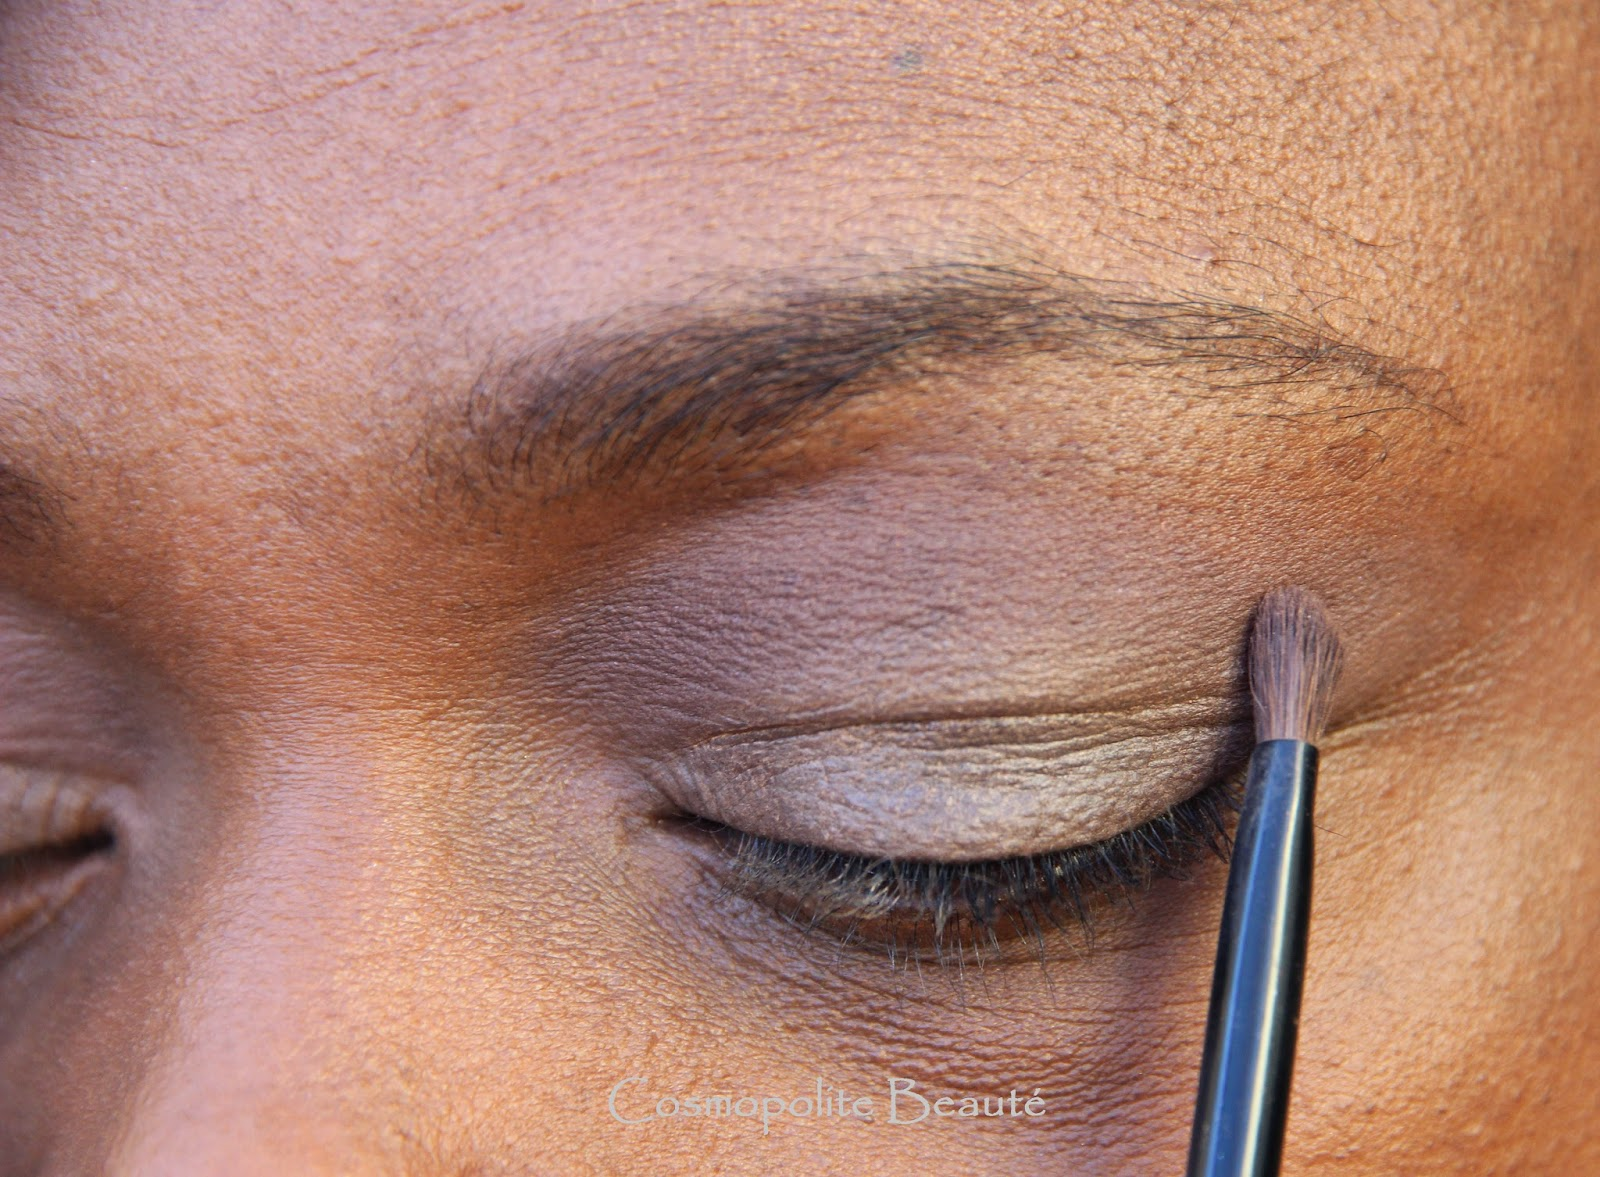 tuto, tutoriel make up, maquillage, L'Oréal, palette, yeux, fards à paupières, nude